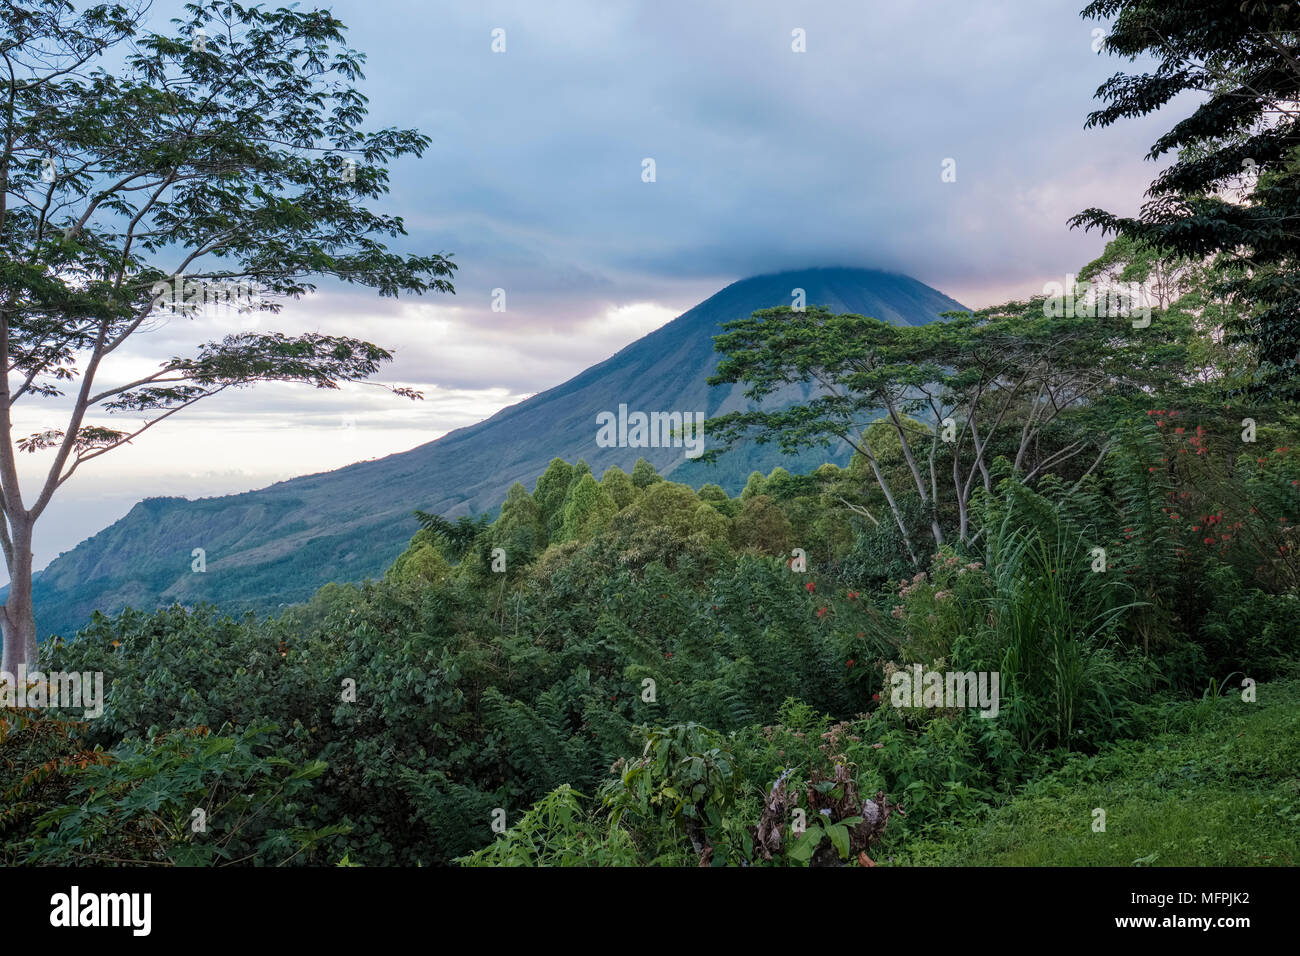 Cloud-capped Inerie volcano (2,227 m), one of the highest peaks in Flores Island (East Nusa Tenggara), Bajawa district, Indonesia. - Stock Image